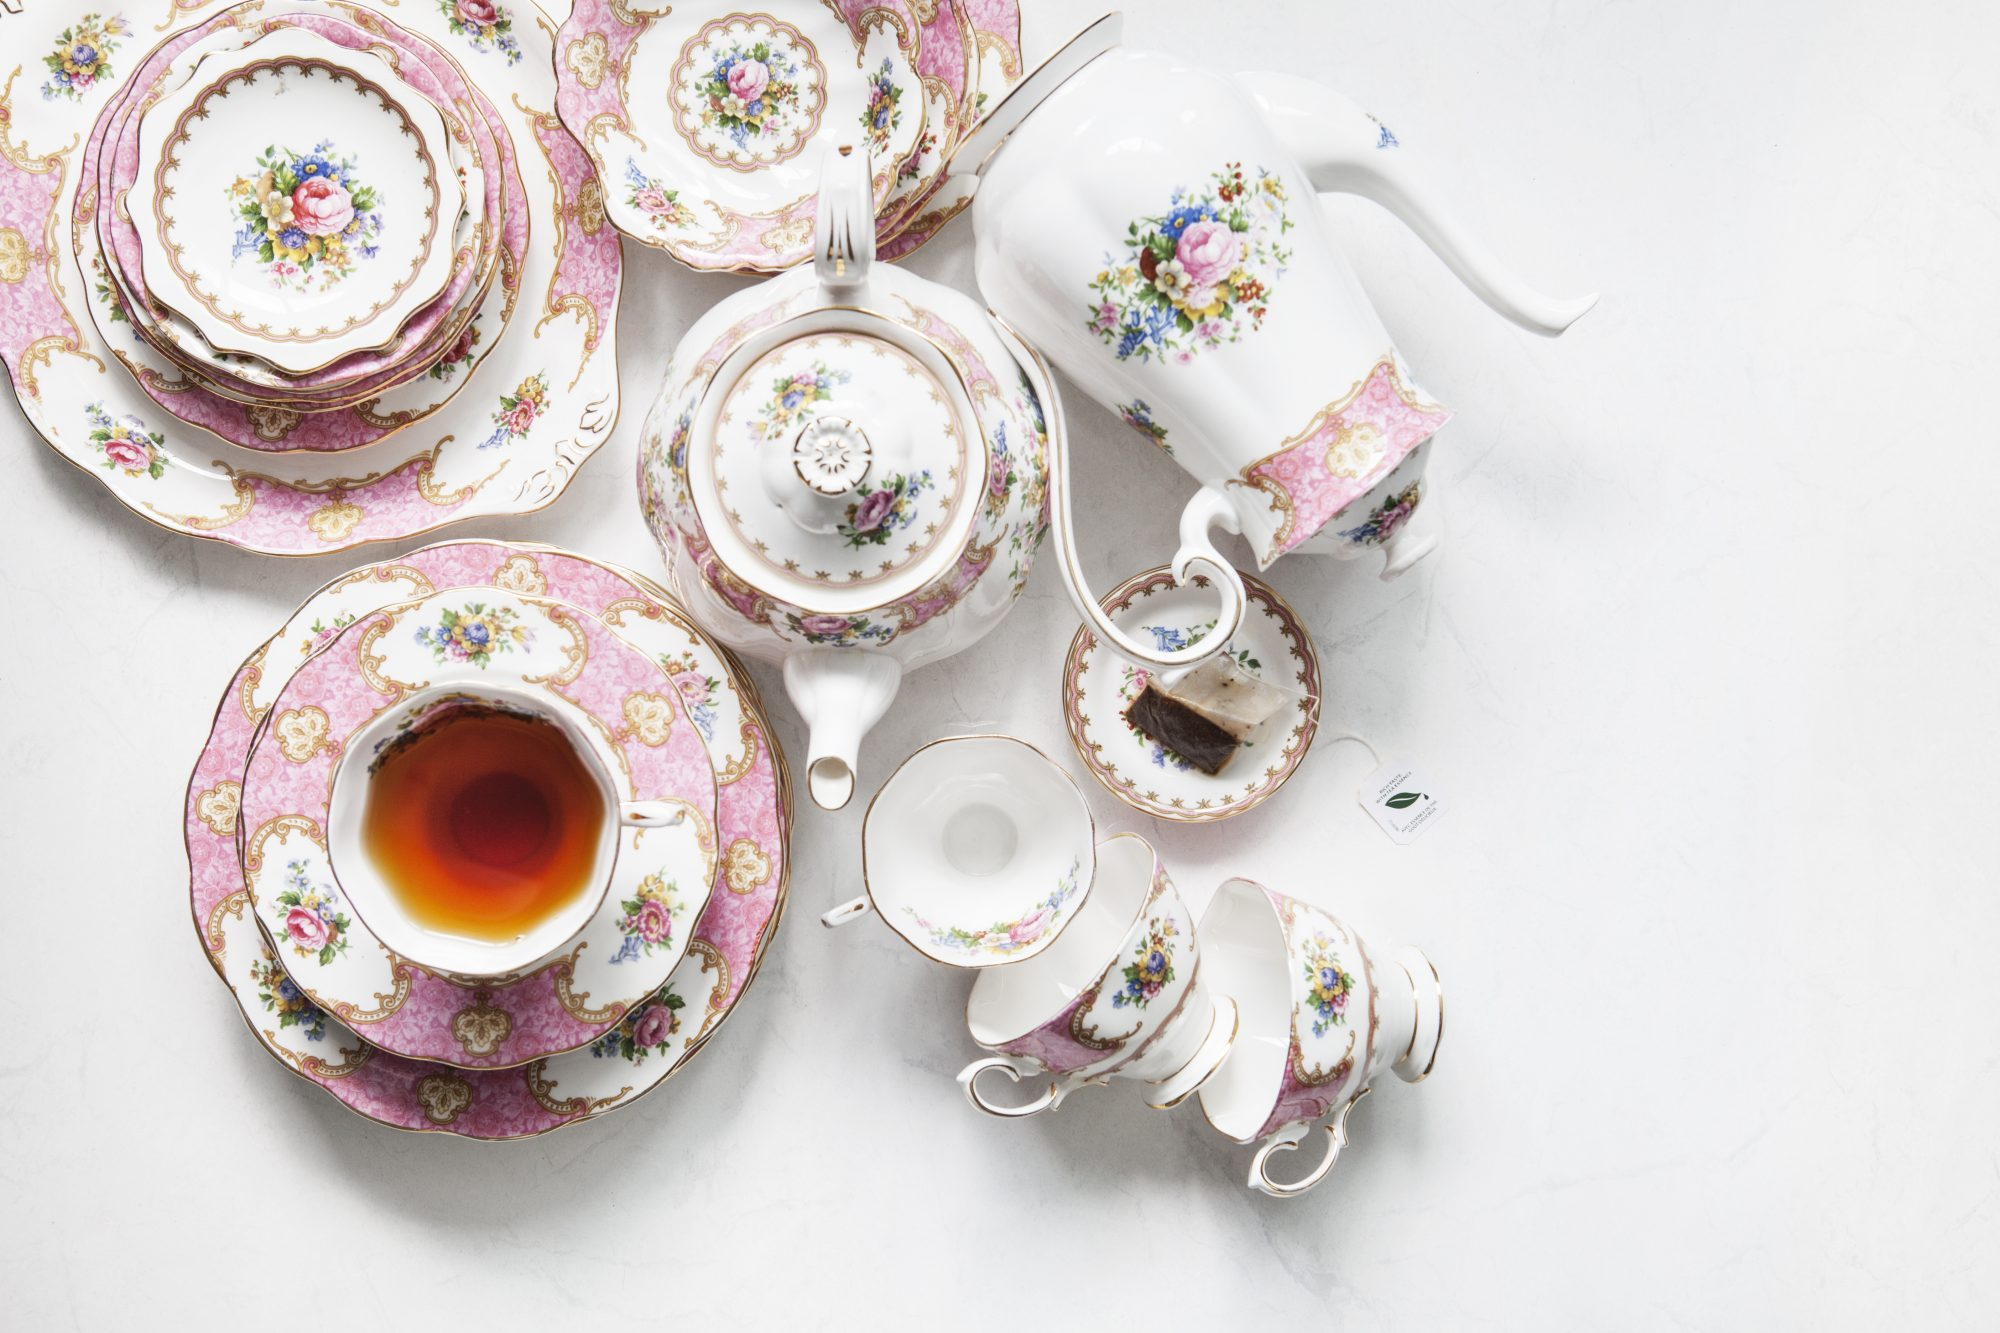 How to Clean Collectibles Made of Porcelain and Ceramics  Martha